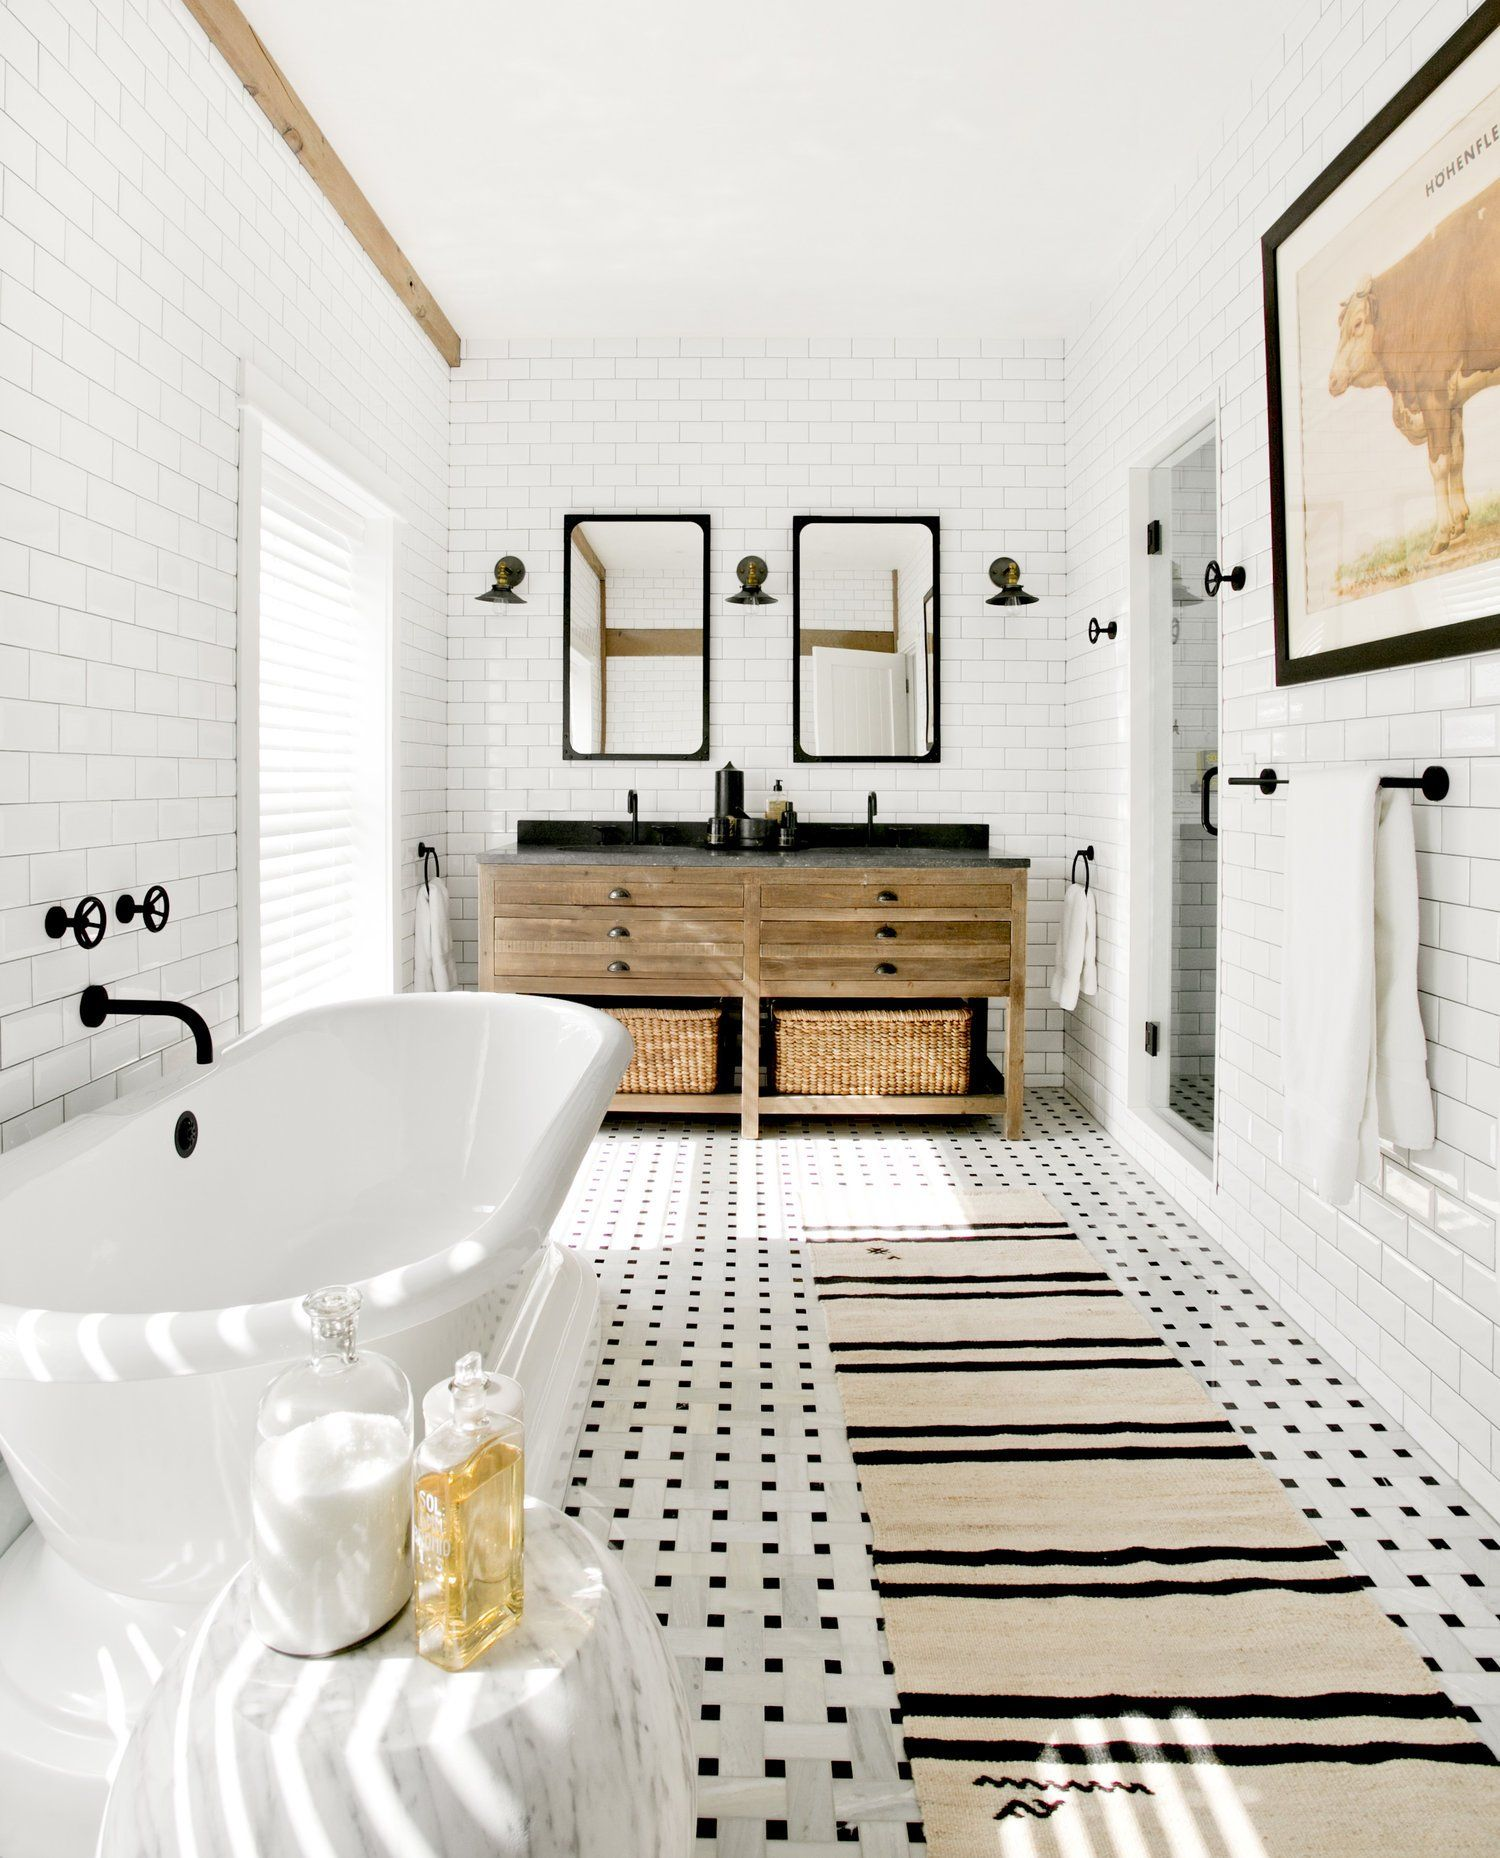 Salle De Bain Naturel ~ i love the basin unit i would rather have a wood painted unit with